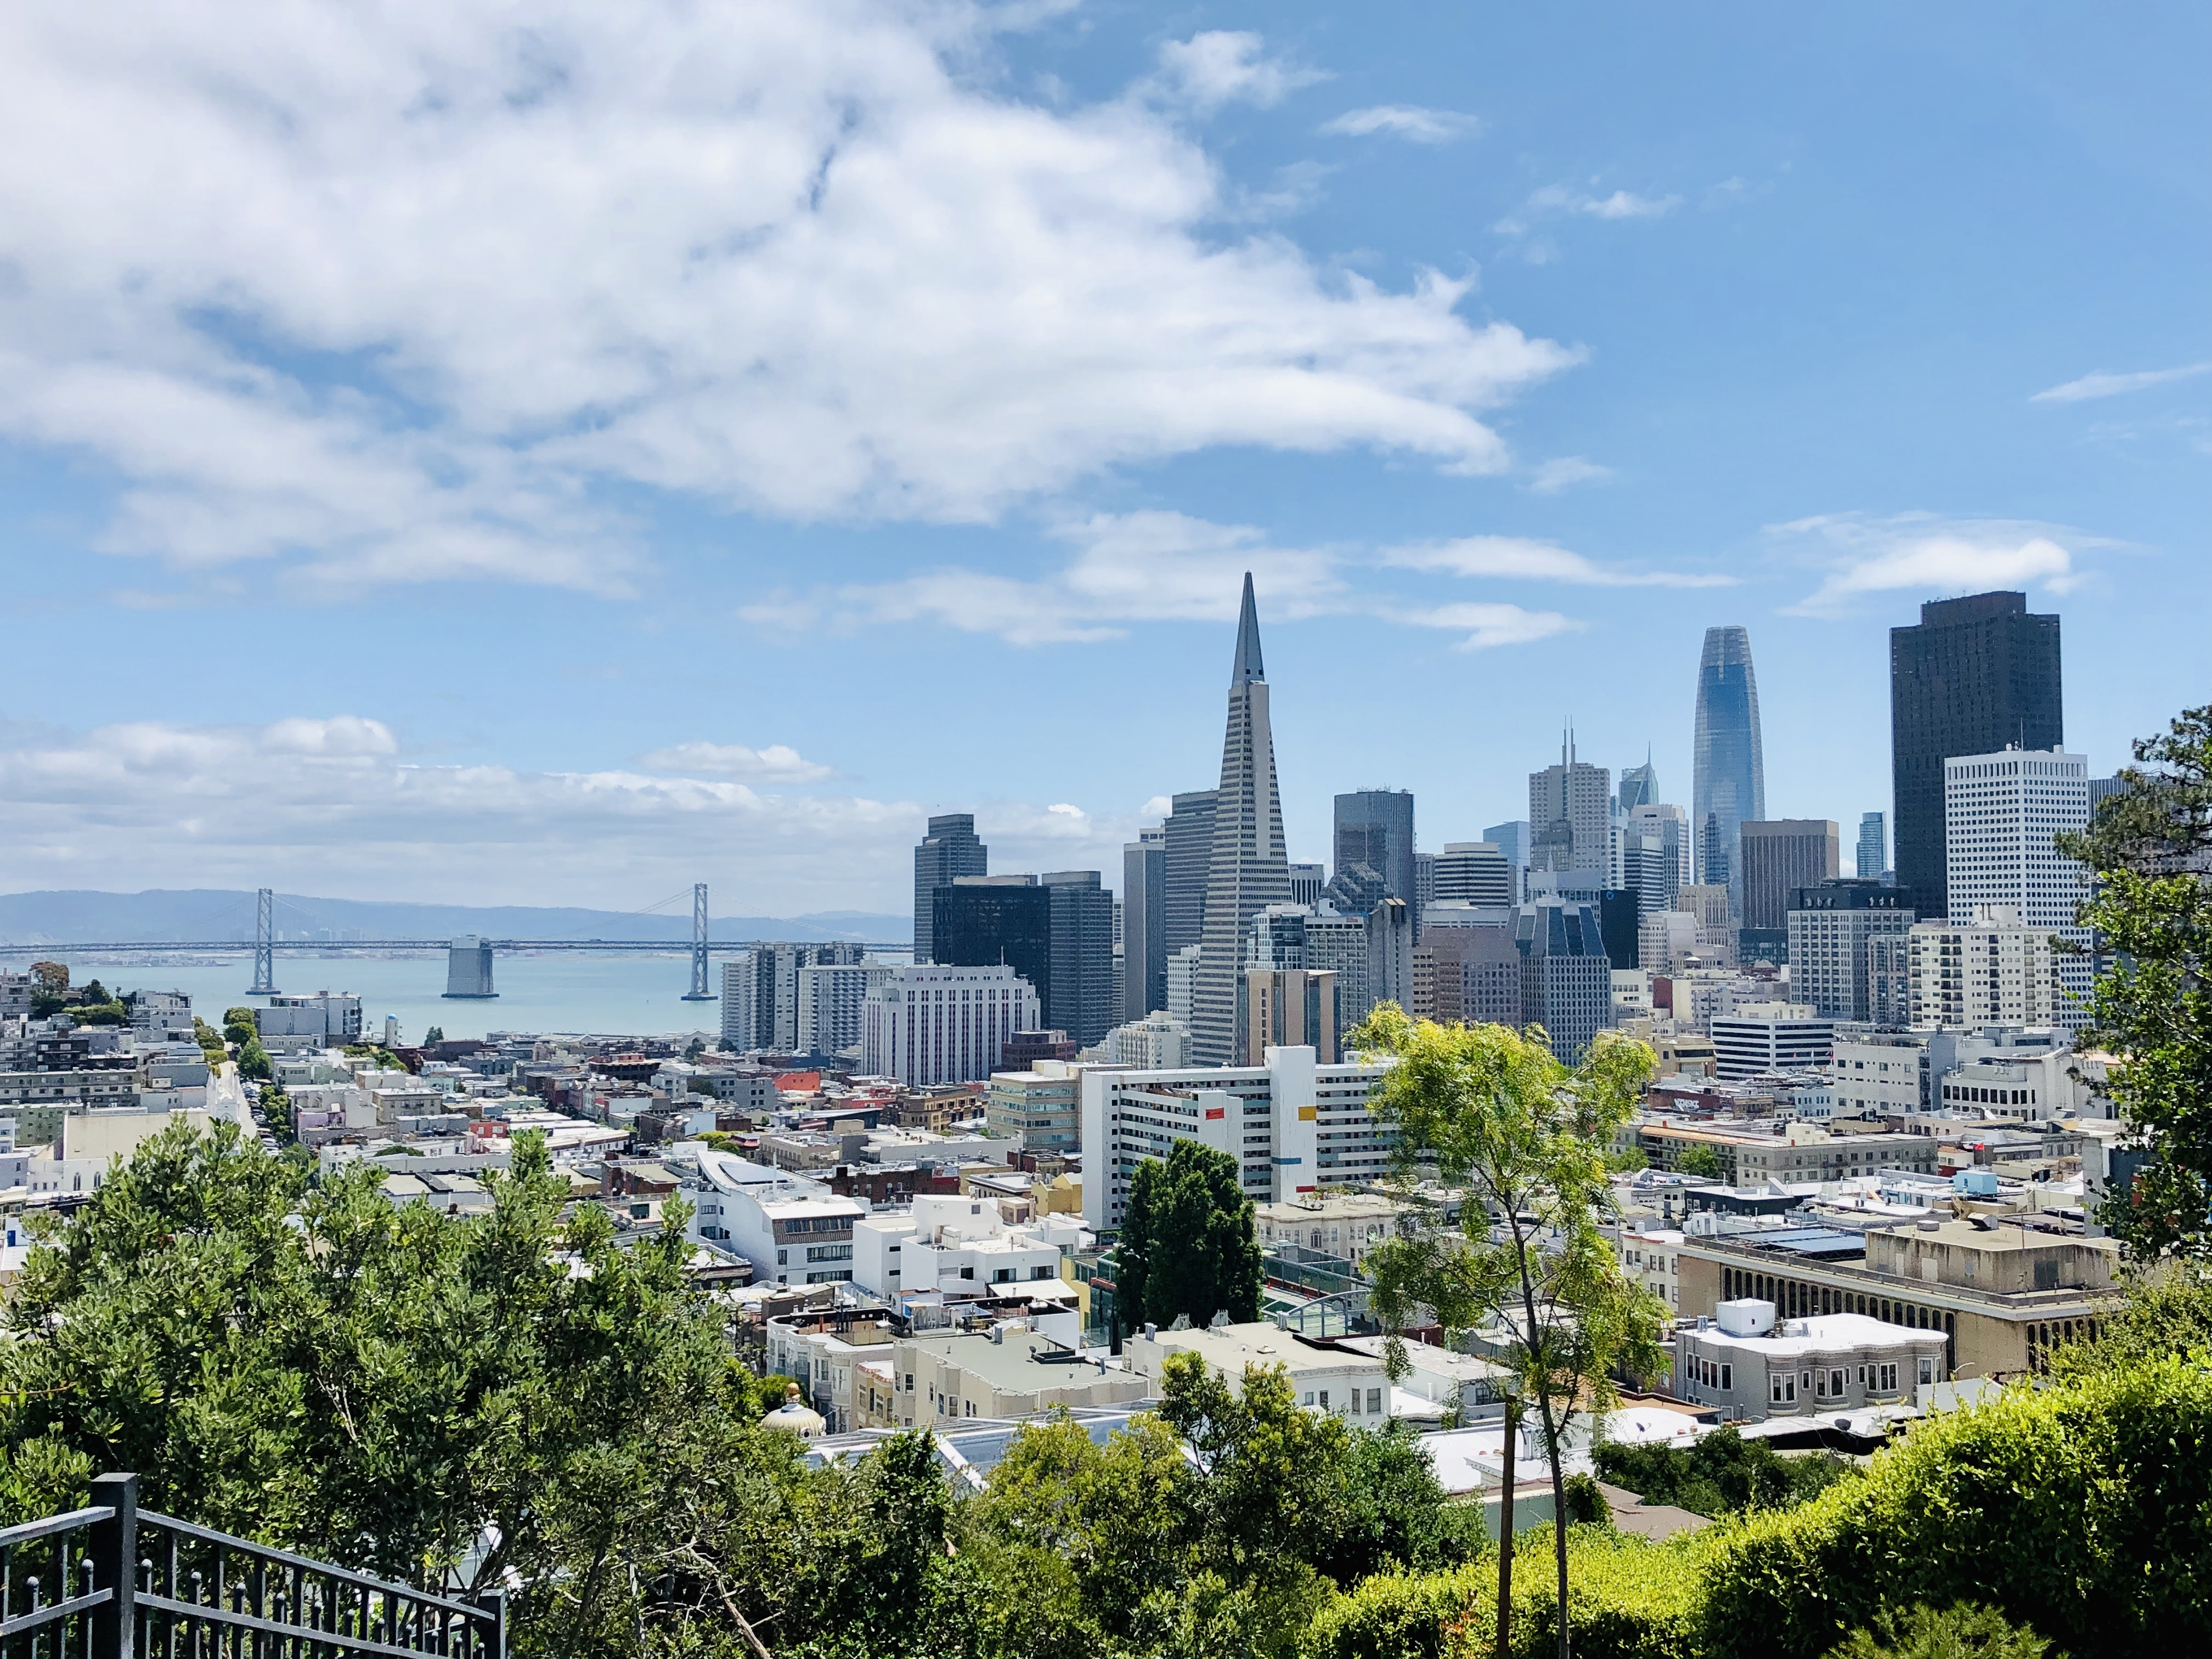 San Francisco undergoes amazing hotel boom [Download construction report]